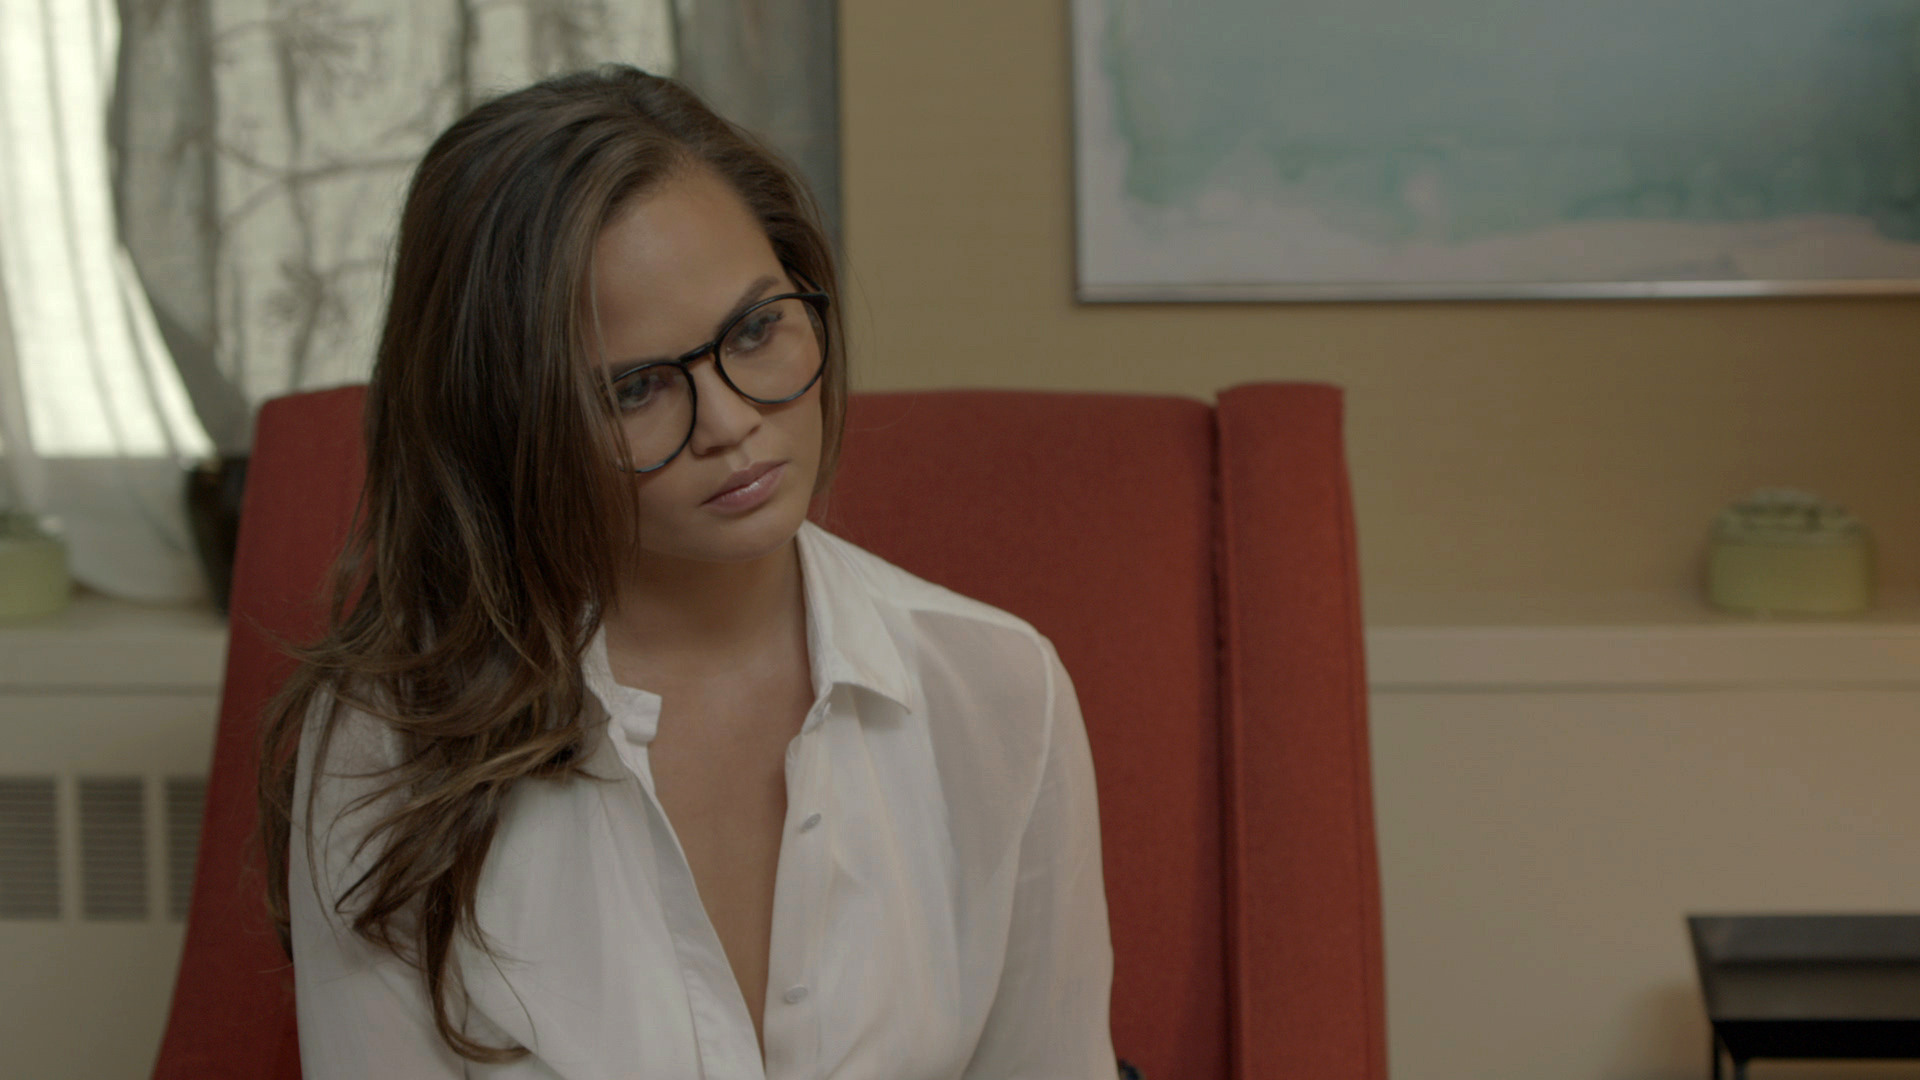 Chrissy Teigen, Couples Counselor